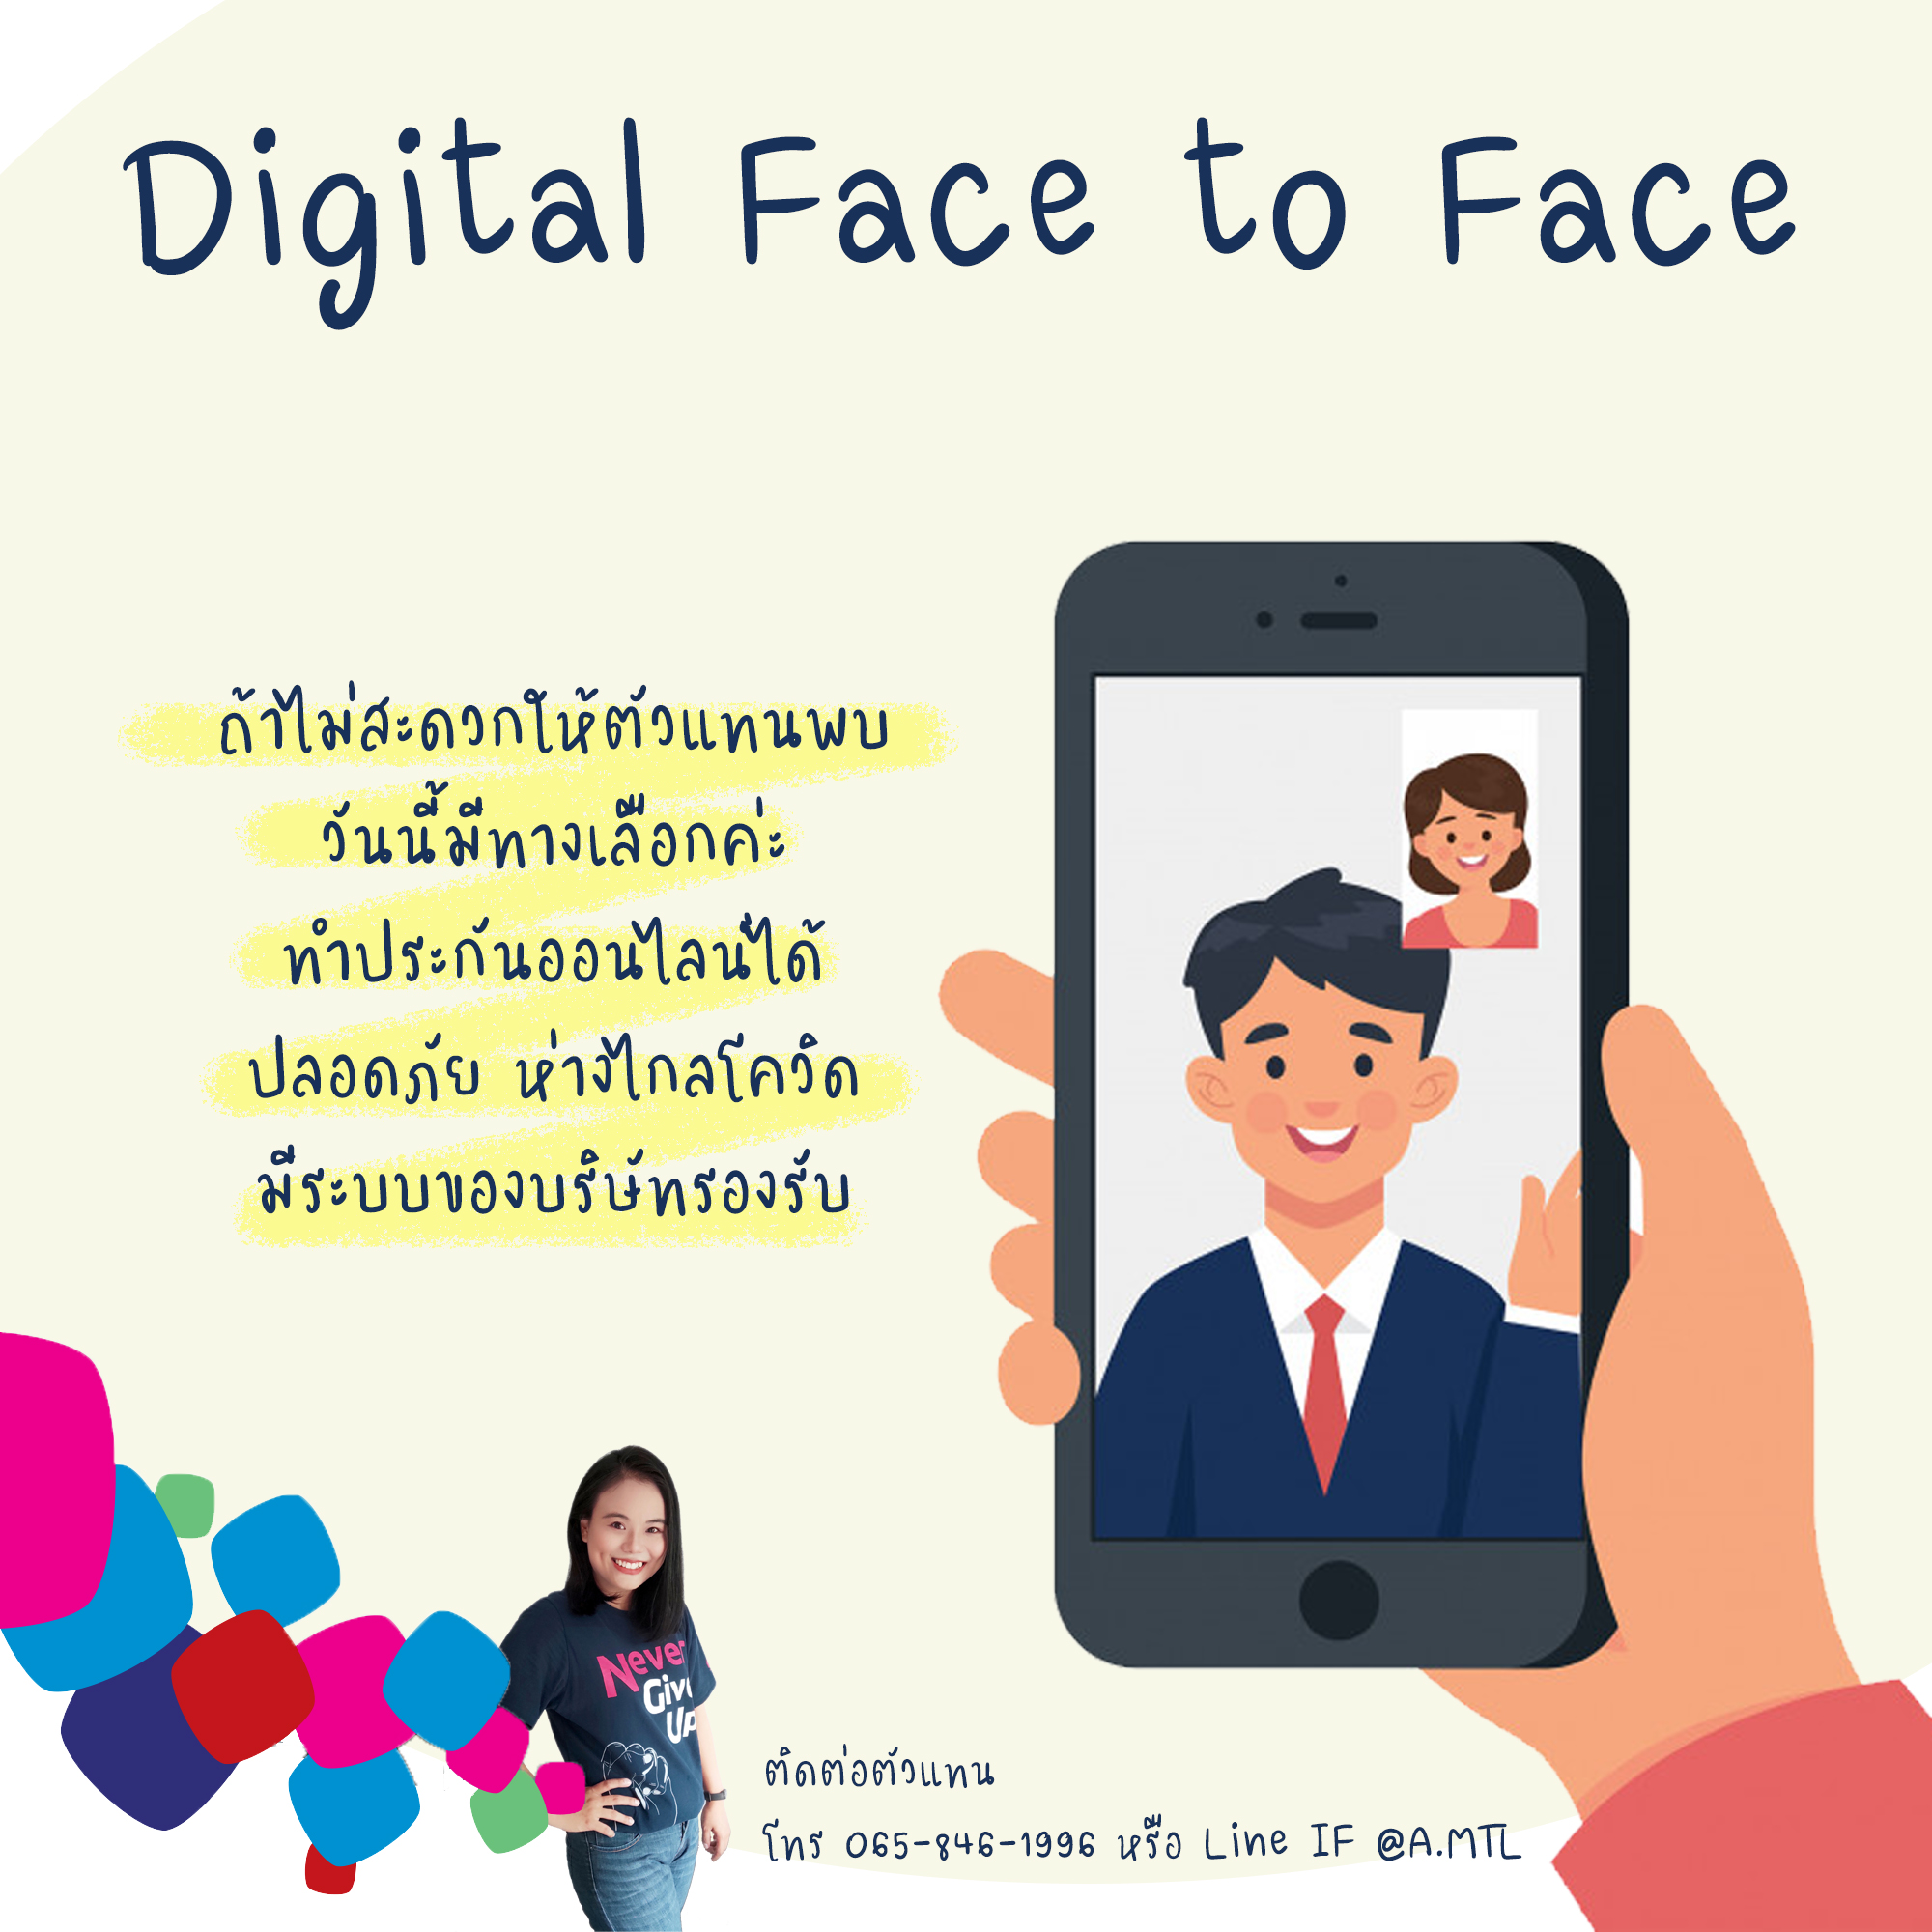 Digital face to face